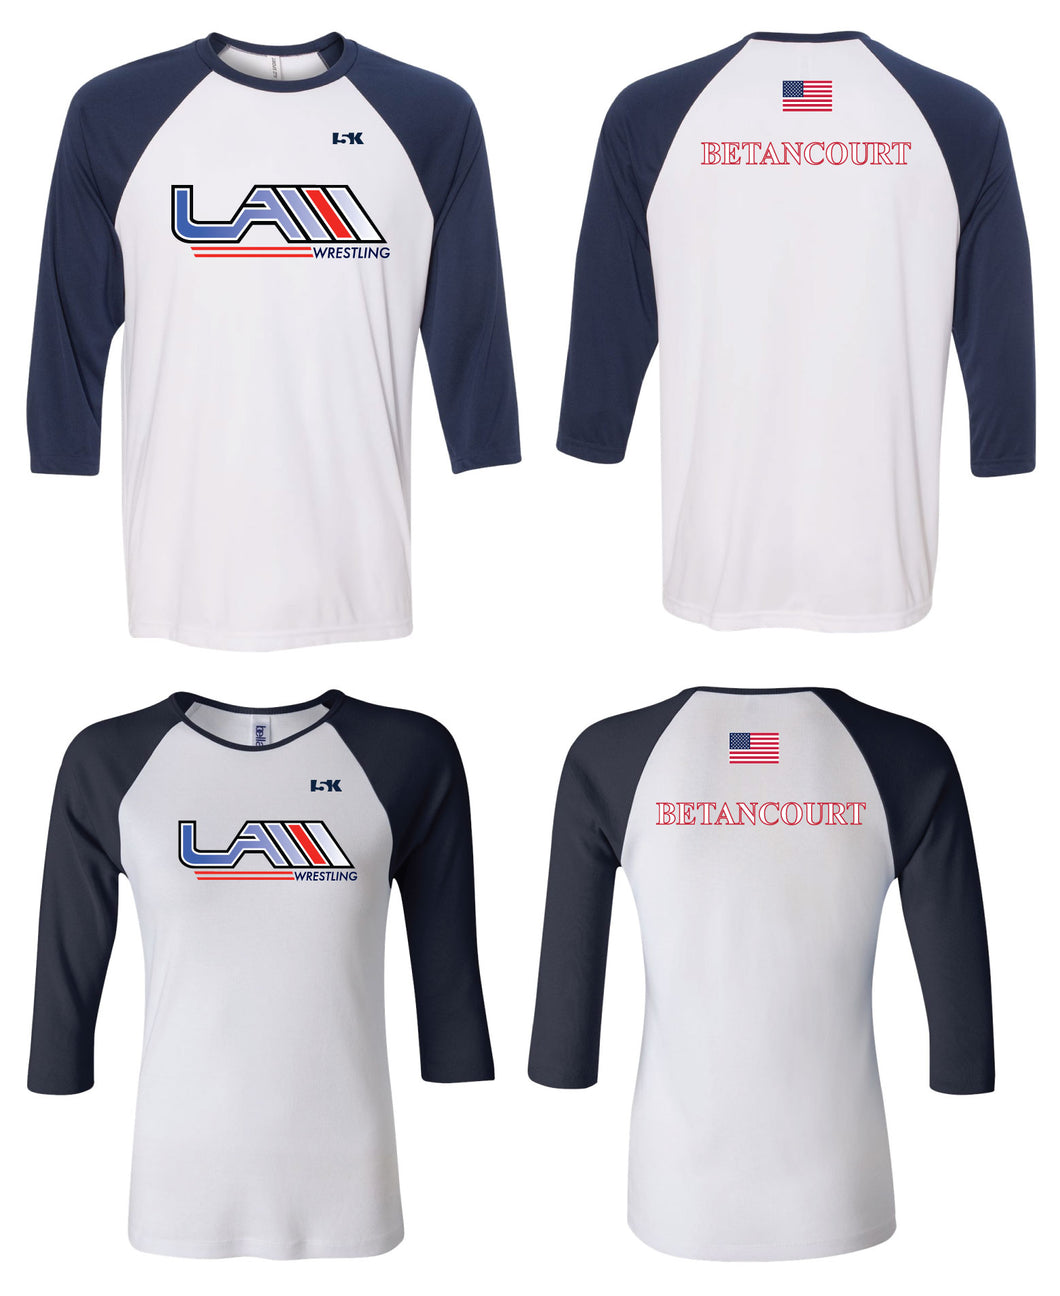 LAW Baseball Shirt - 5KounT2018